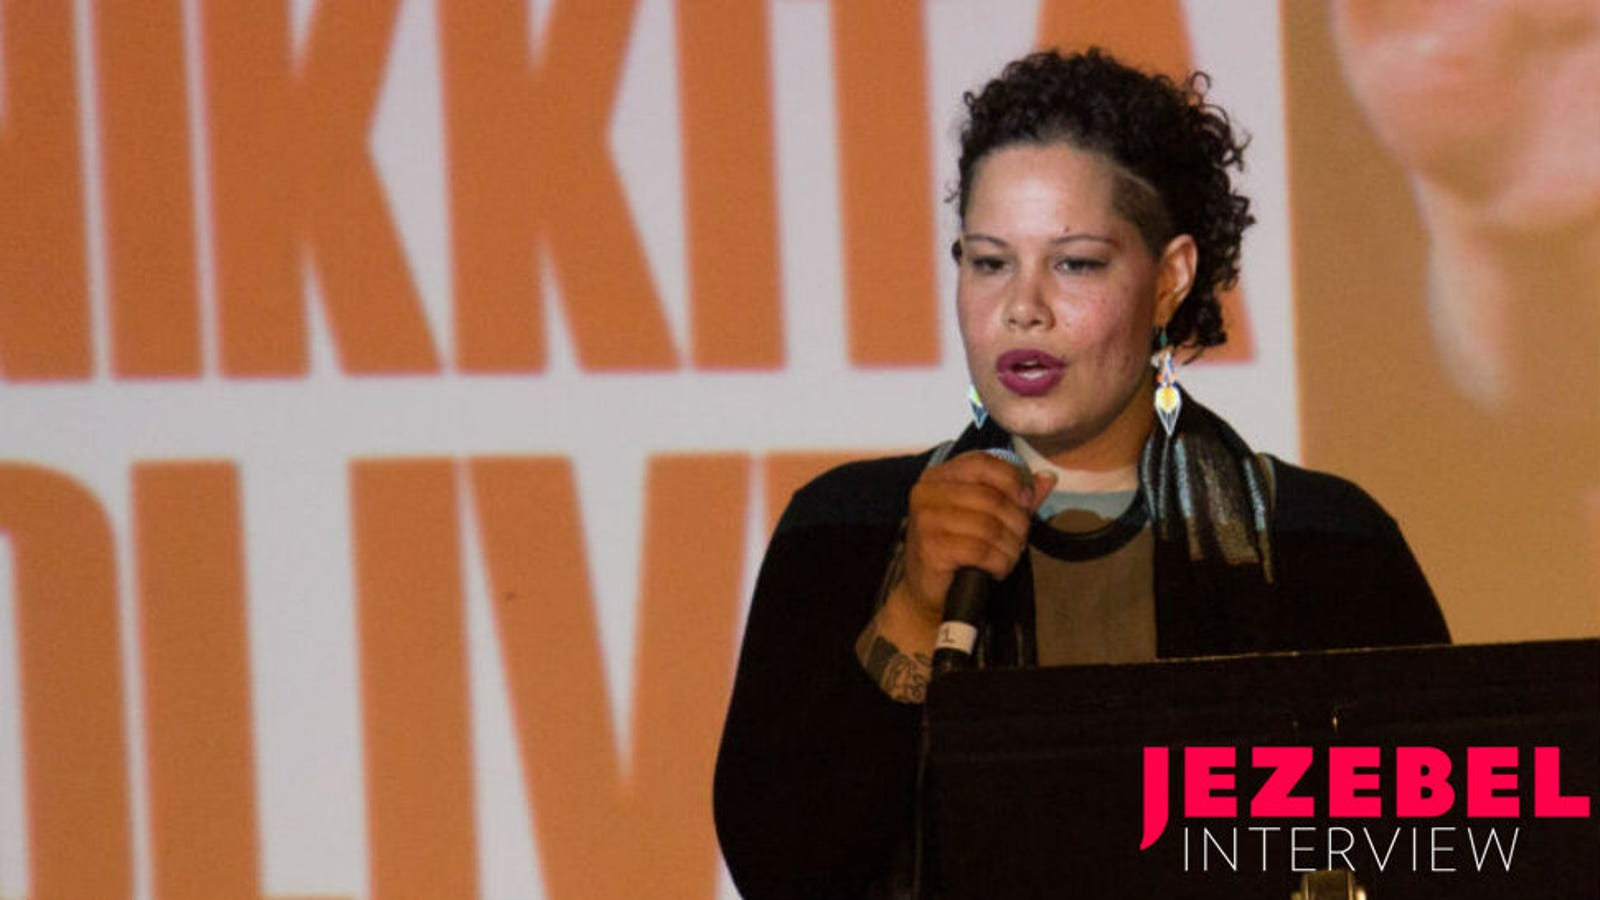 A Conversation With Nikkita Oliver, the Seattle Mayoral Candidate Whose Activism Spawned a Movement